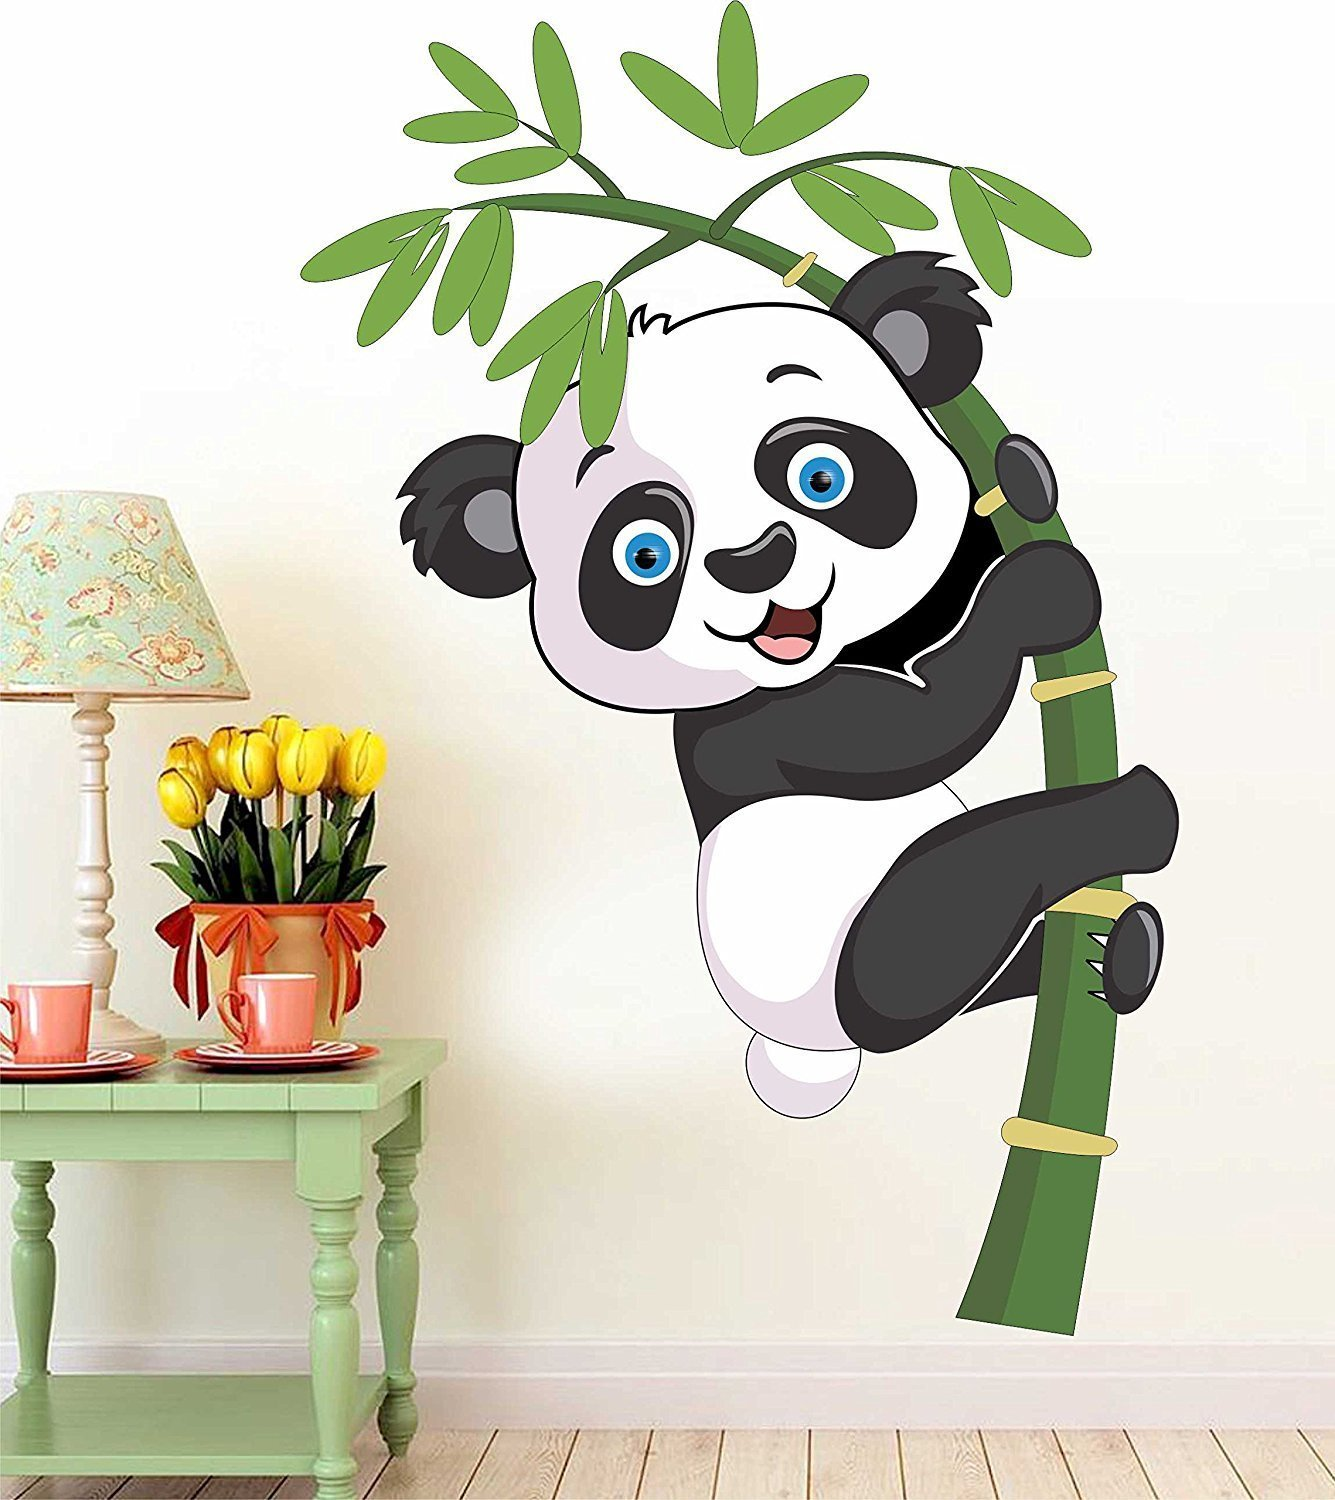 Buy Printelligent Cute Baby Panda Wall Stickers Decal Wallpaper For Kids Home Living Room Bedroom Vinyl Standard Online At Low Prices In India Amazon In